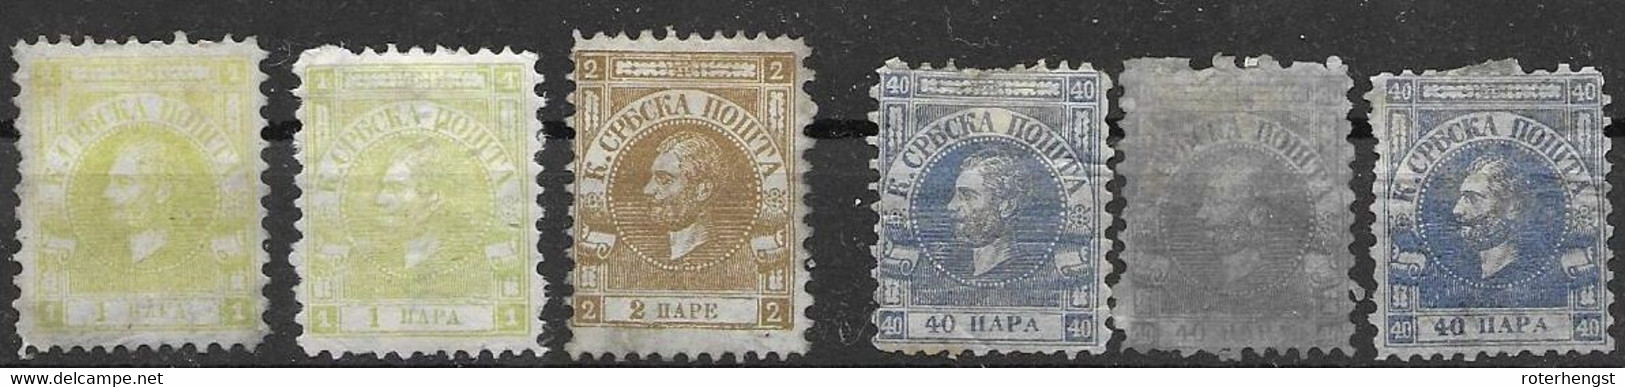 Serbia Mh * With And Without Gum NO THINS (40 Pa Is Pelure Paper One With Gum, Two Without) Est 200 Euros - Serbia